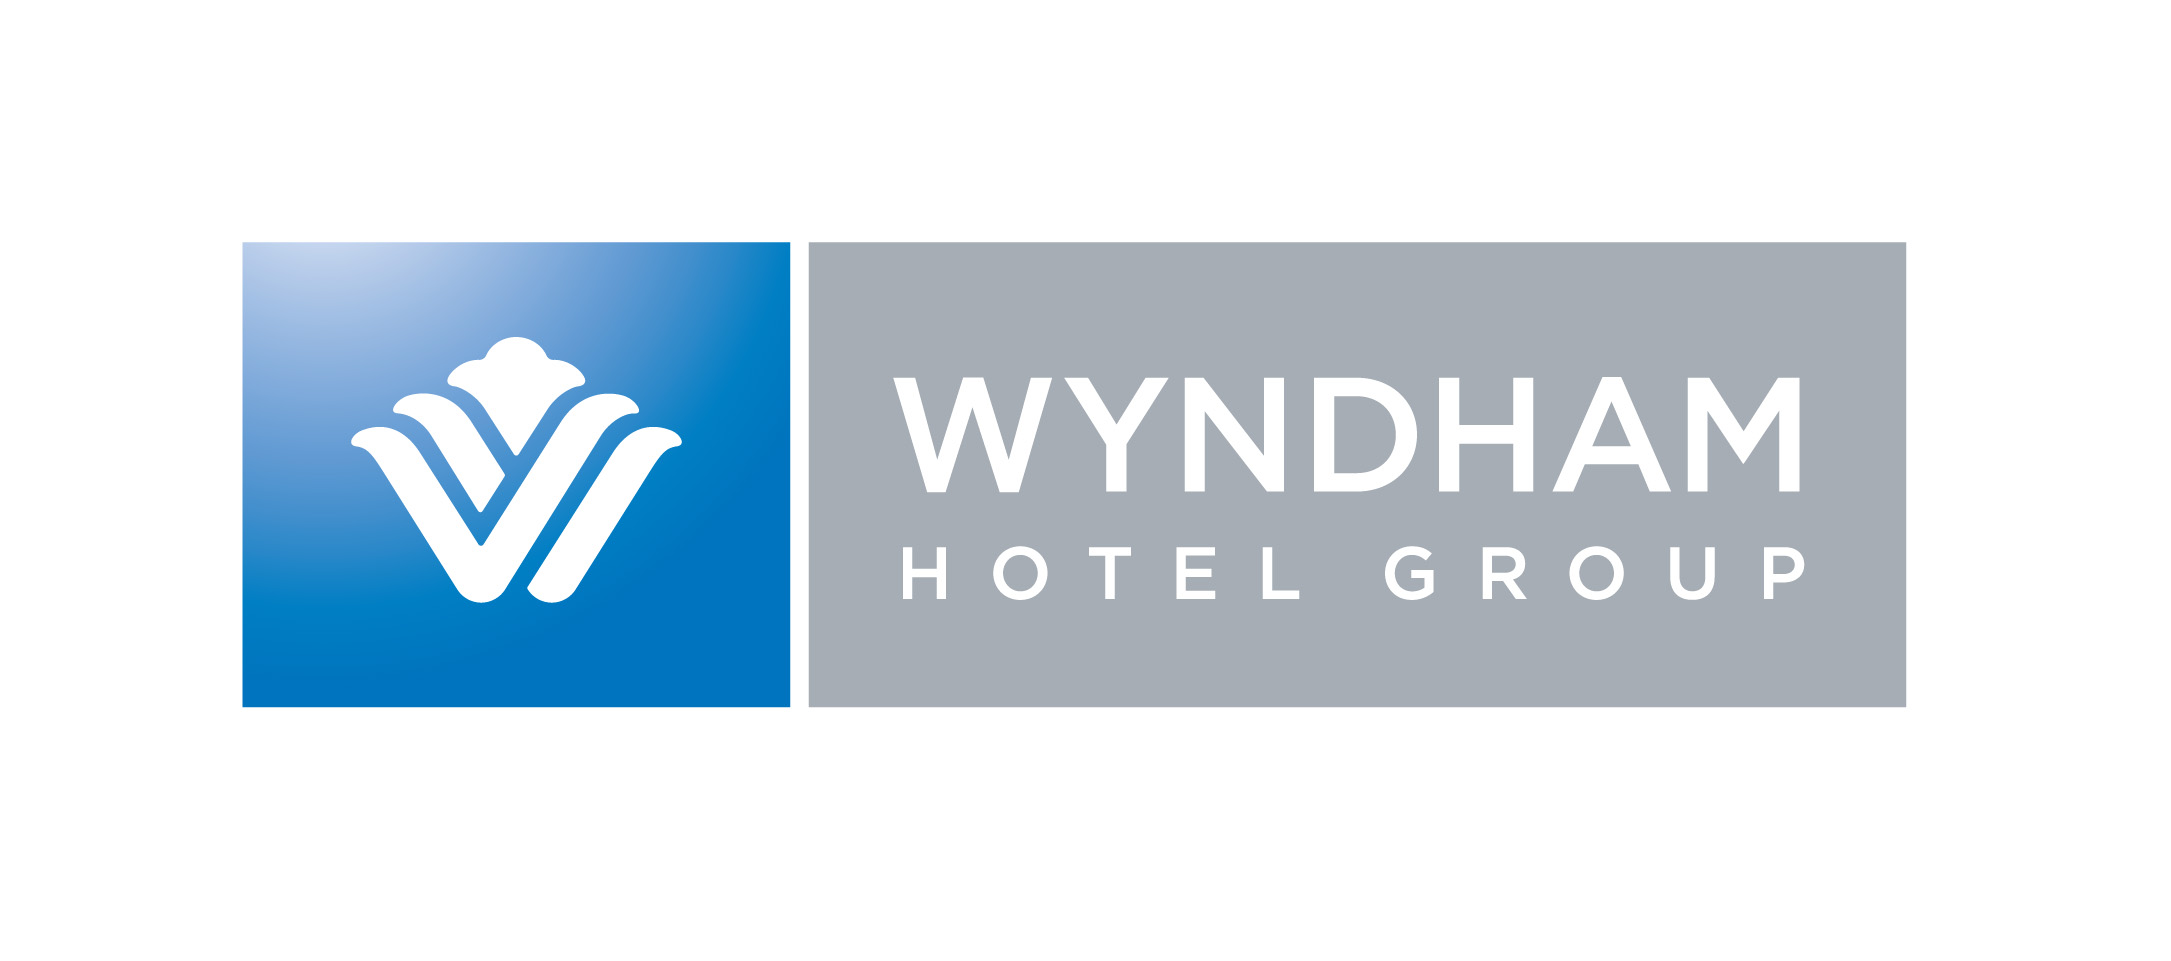 Dividendos wyndham for The wyndham